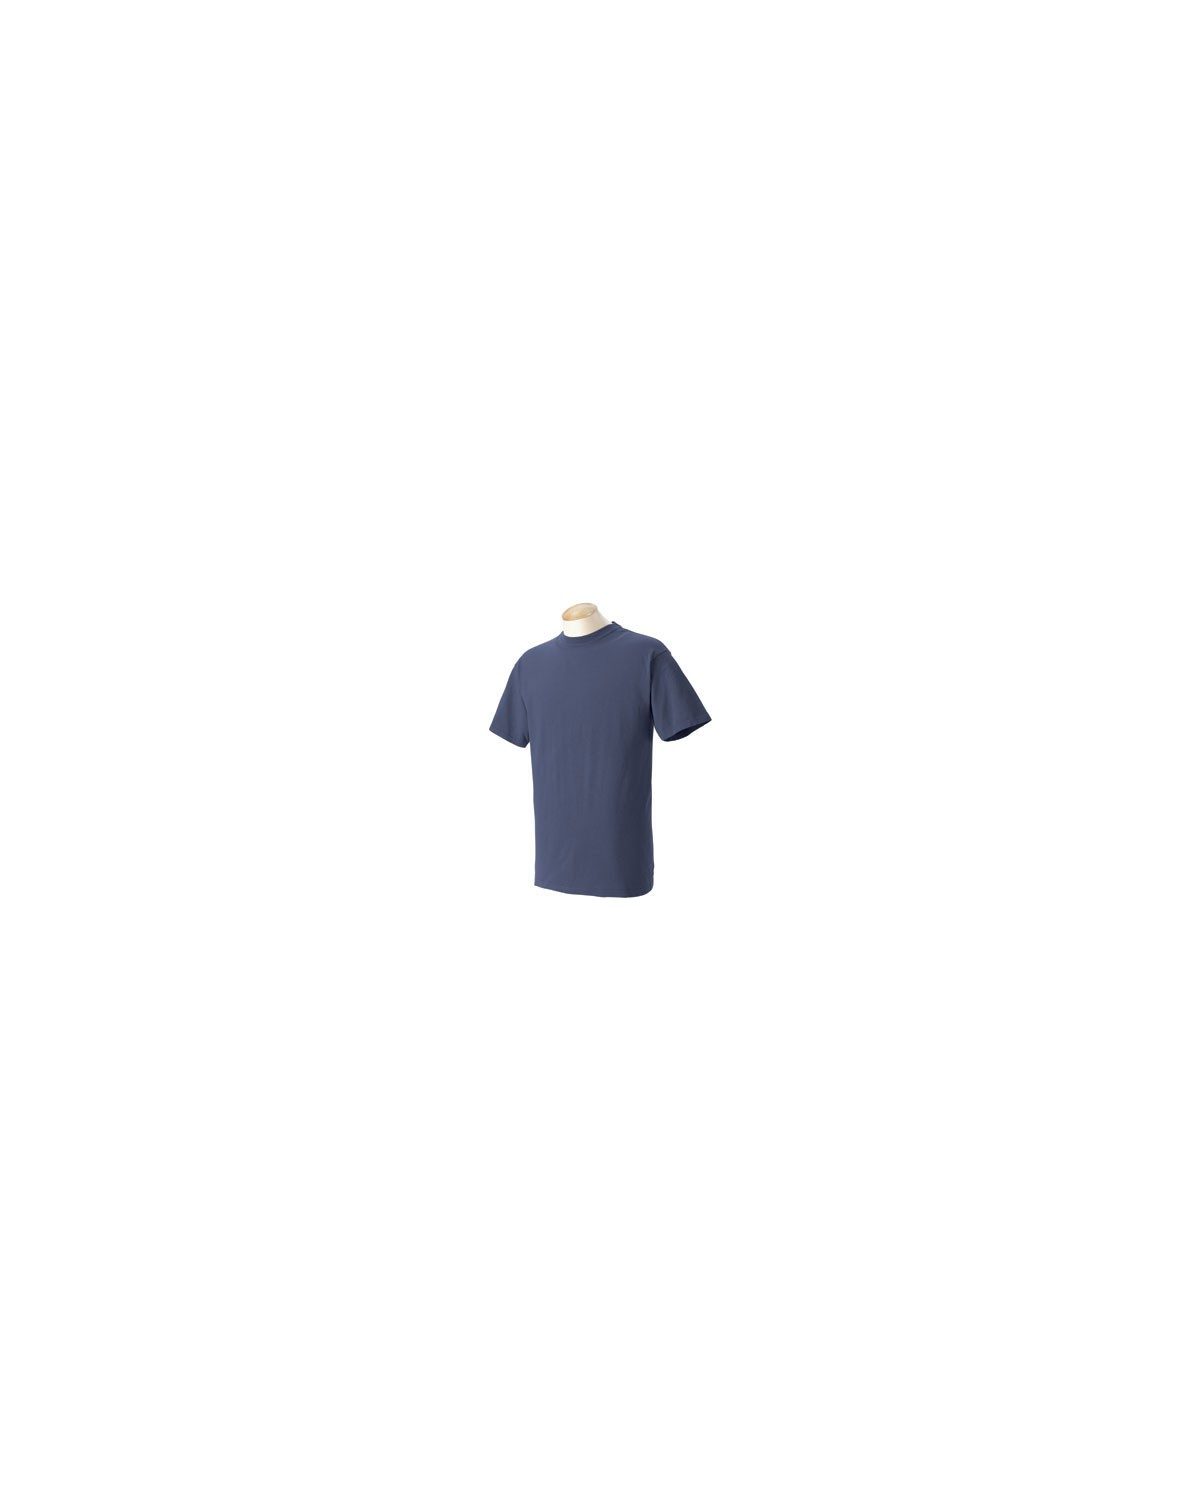 C9018 Comfort Colors NAVY